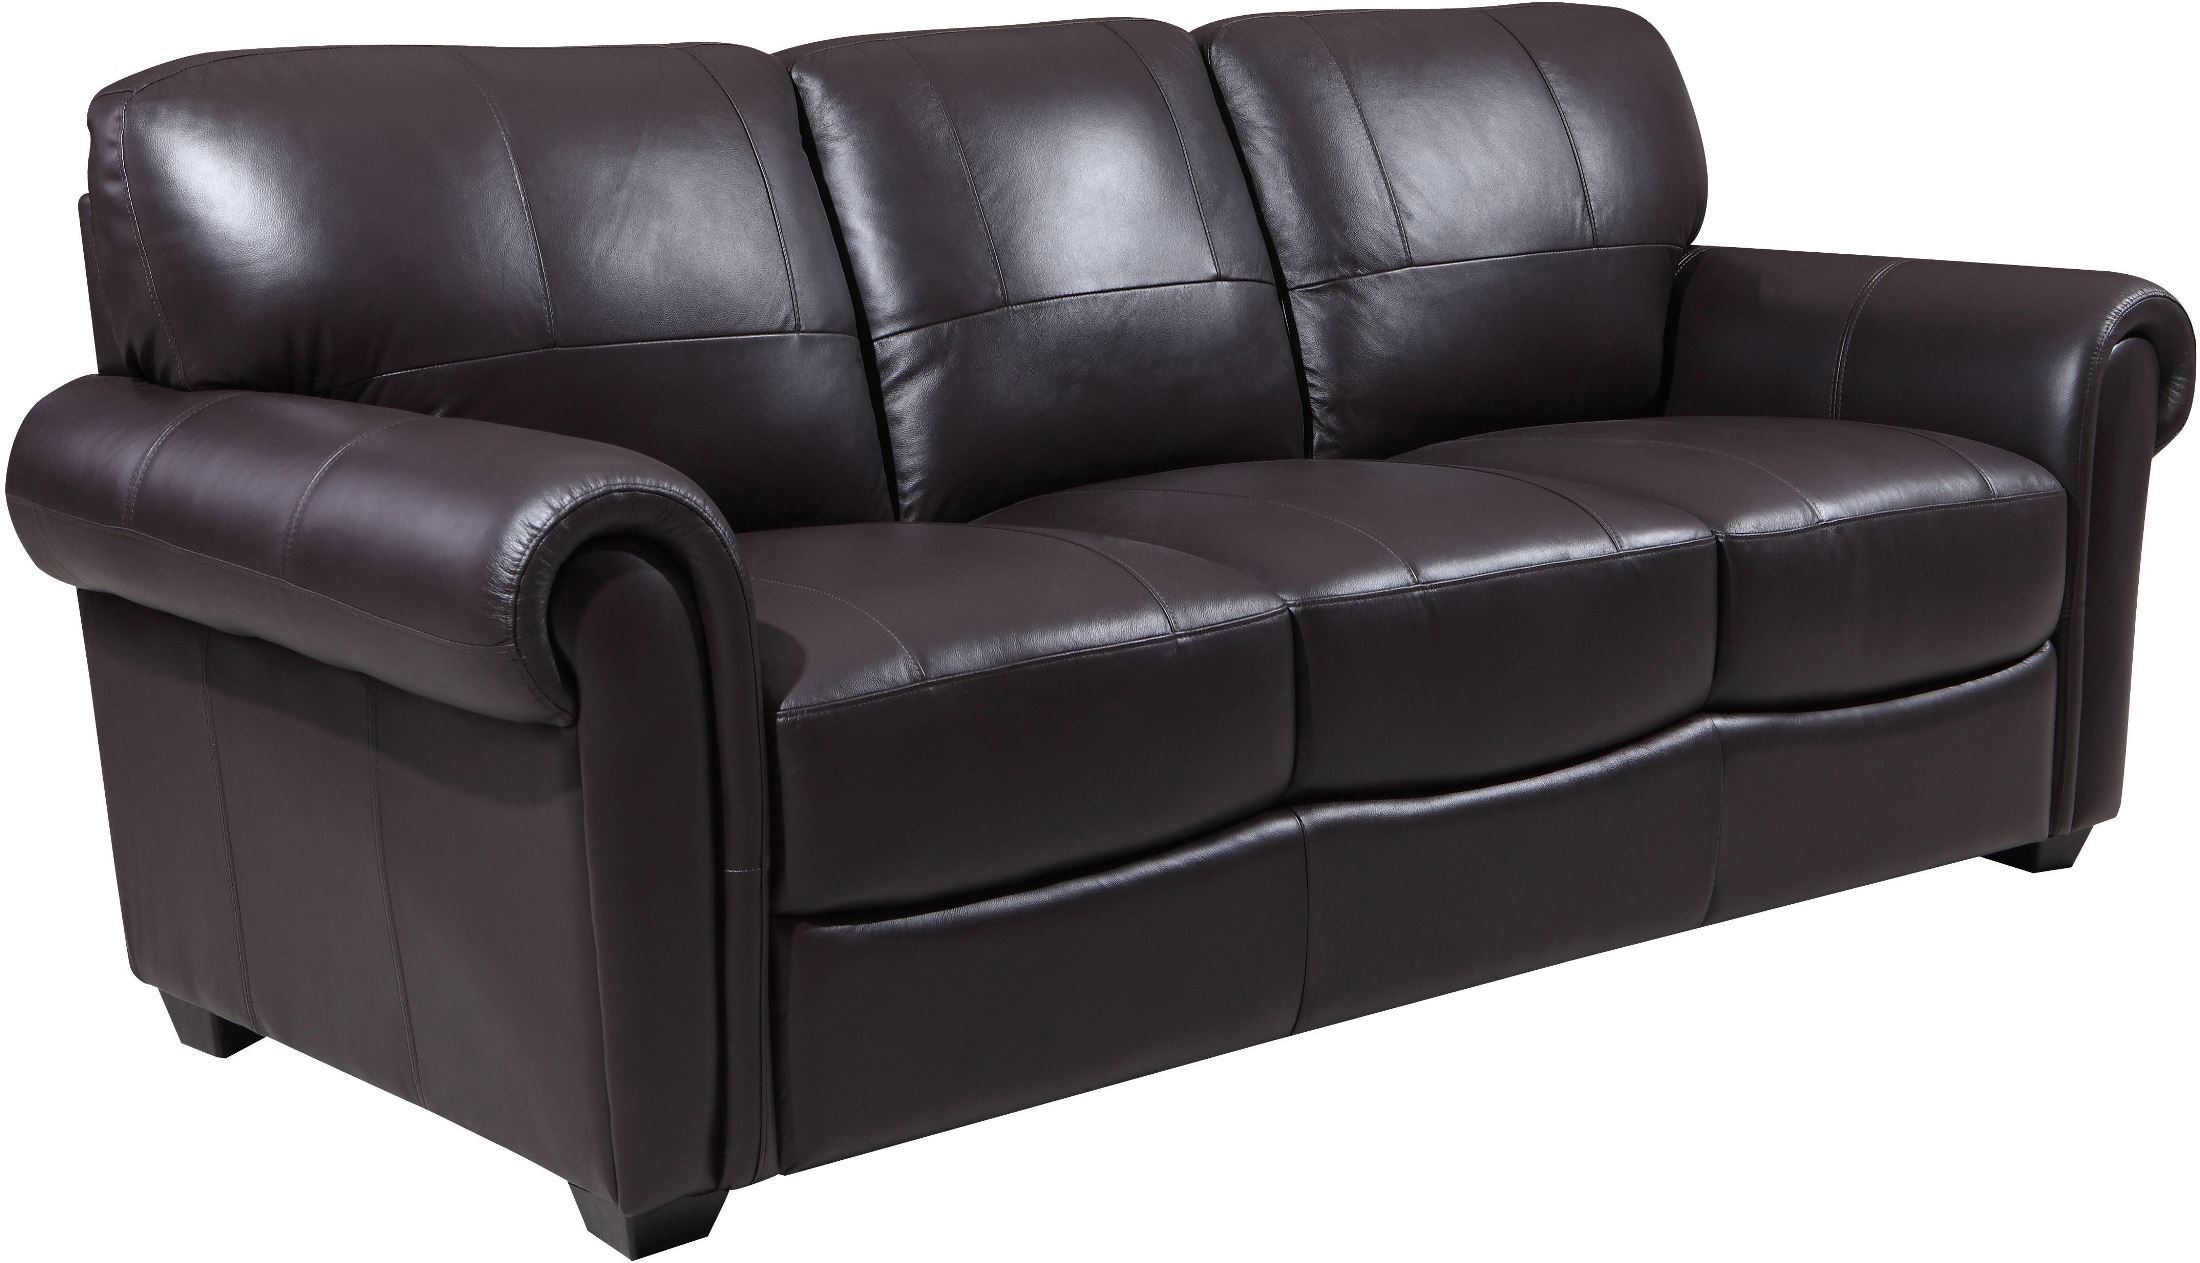 Shae Branson Dark Brown Leather Sofa from Luxe Leather